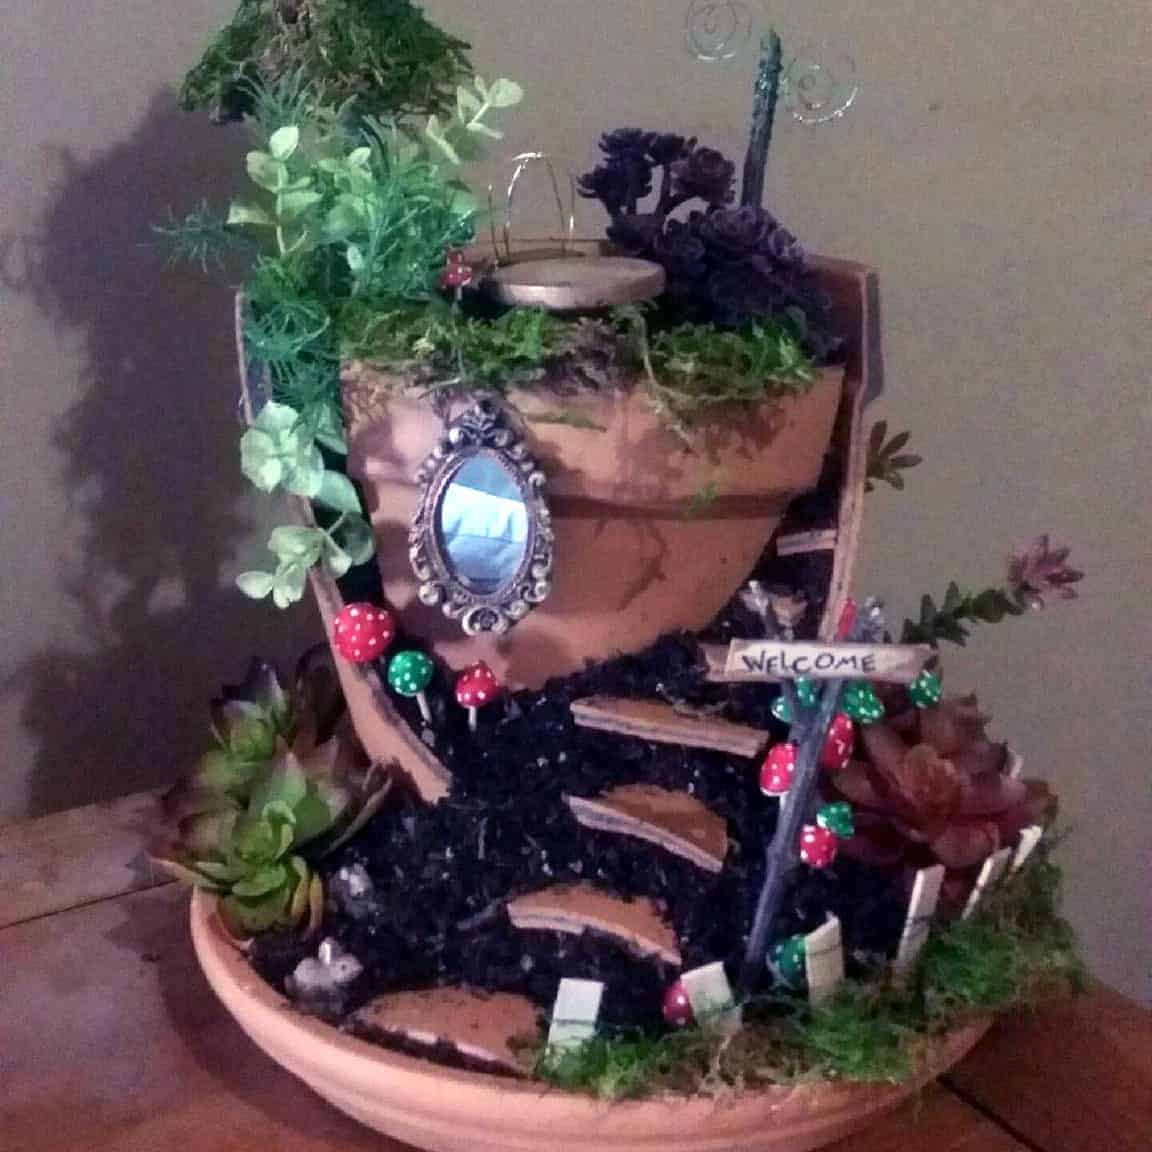 How To Make A Two Story Living Room Cozy: How To Make Your Very Own Fairy Garden